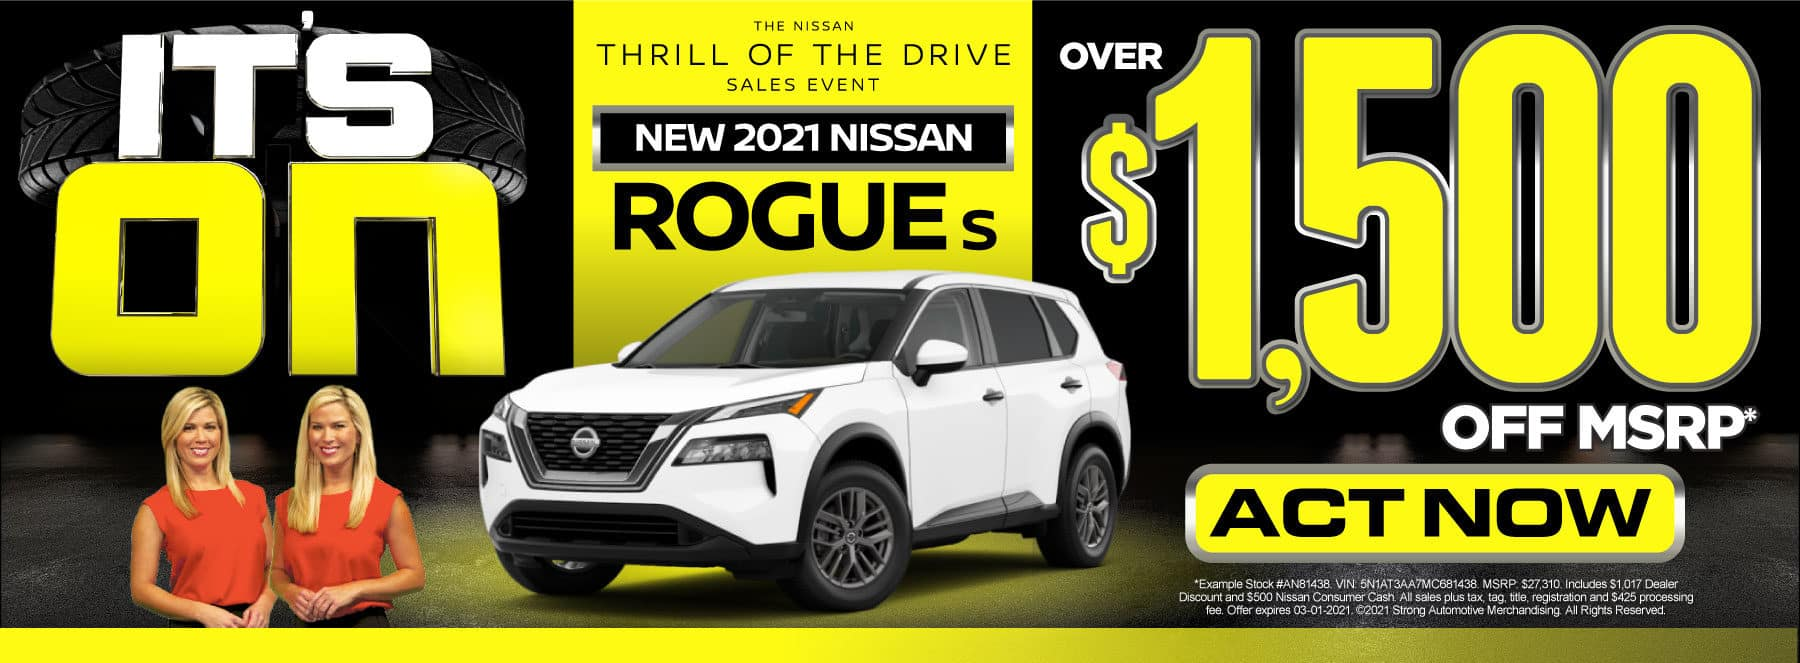 New 2021 Nissan Rogue - Over $1,500 off MSRP - Act Now